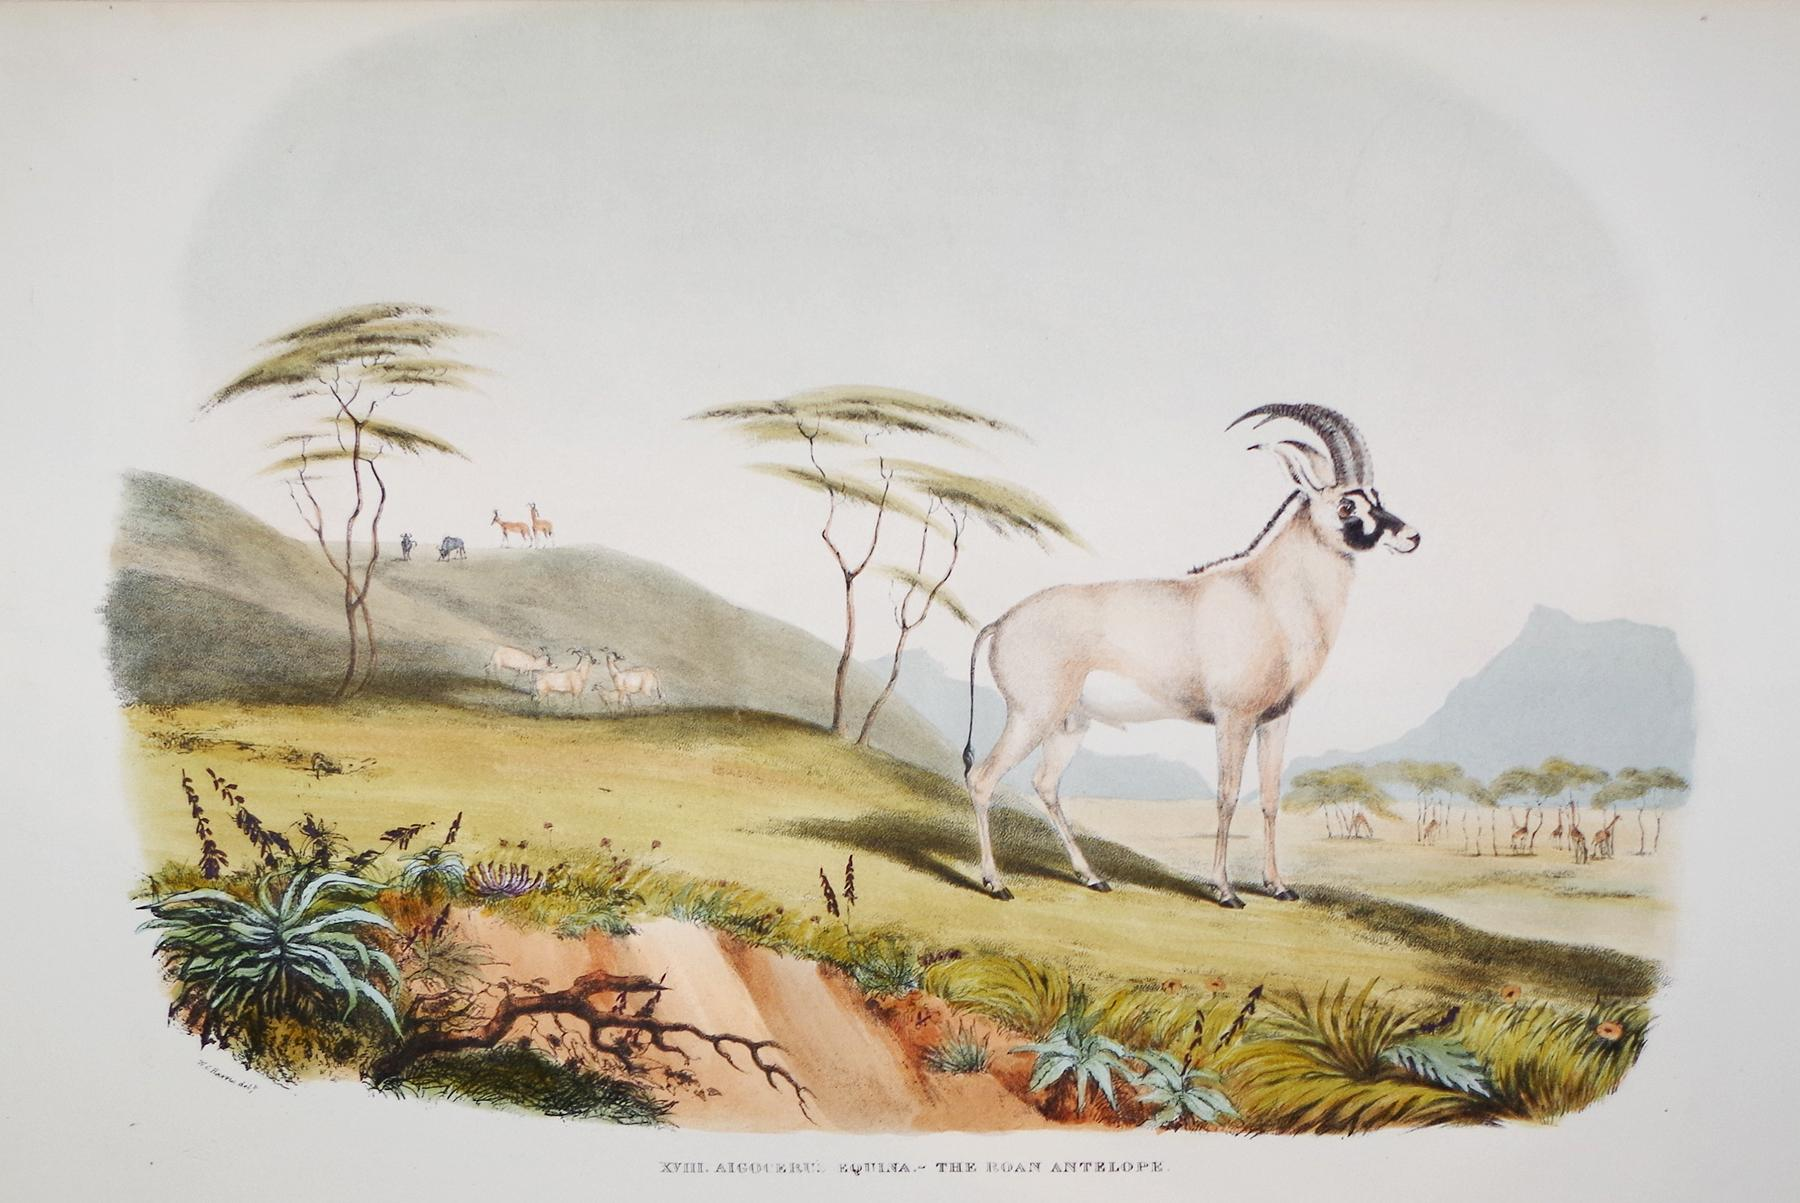 Portraits of Game and Wild Animals Of Southern Africa - The Roan Antelope: Captain W. Cornwallis ...